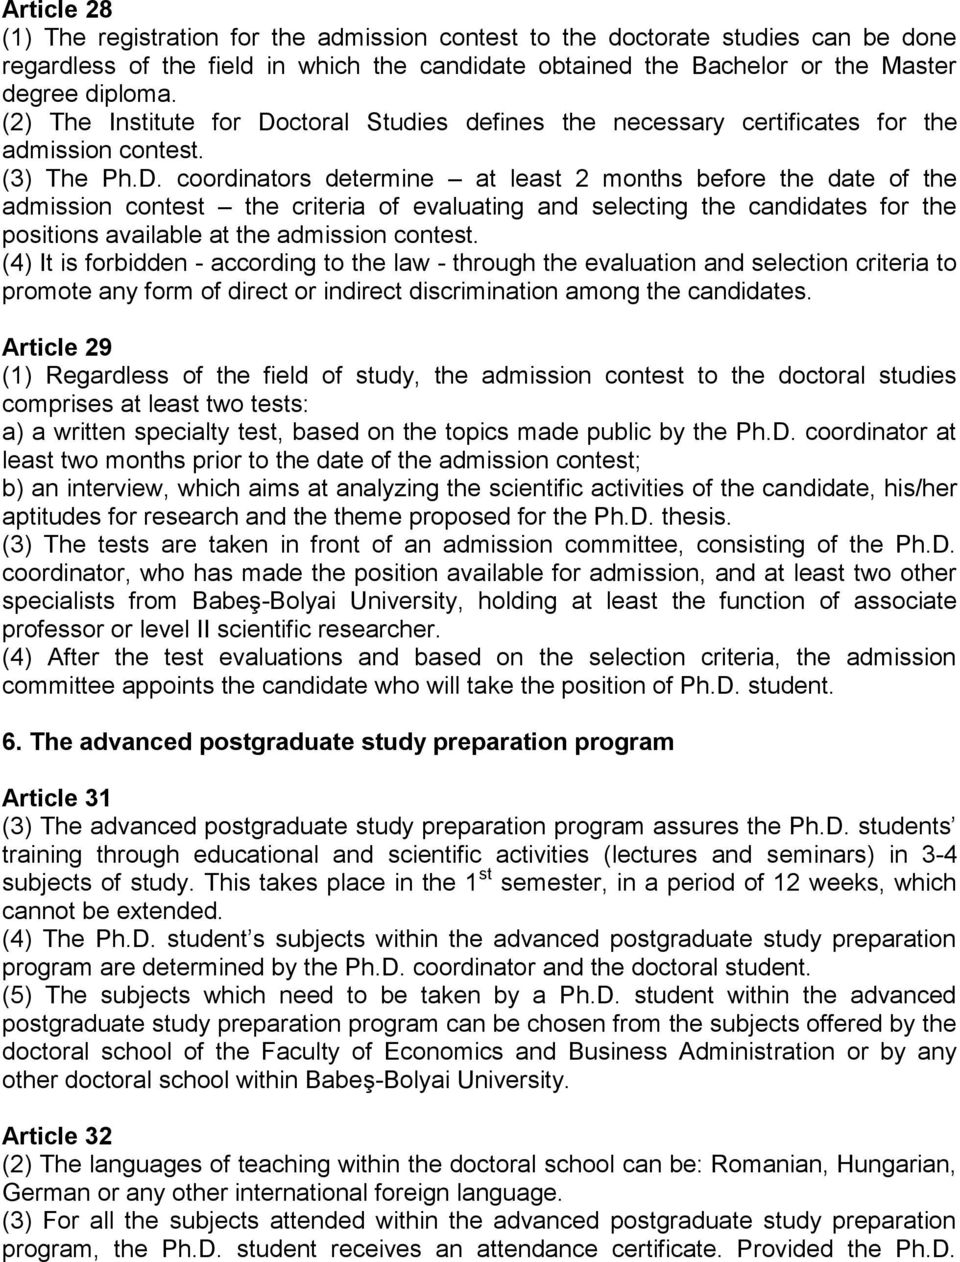 ctoral Studies defines the necessary certificates for the admission contest. (3) The Ph.D.